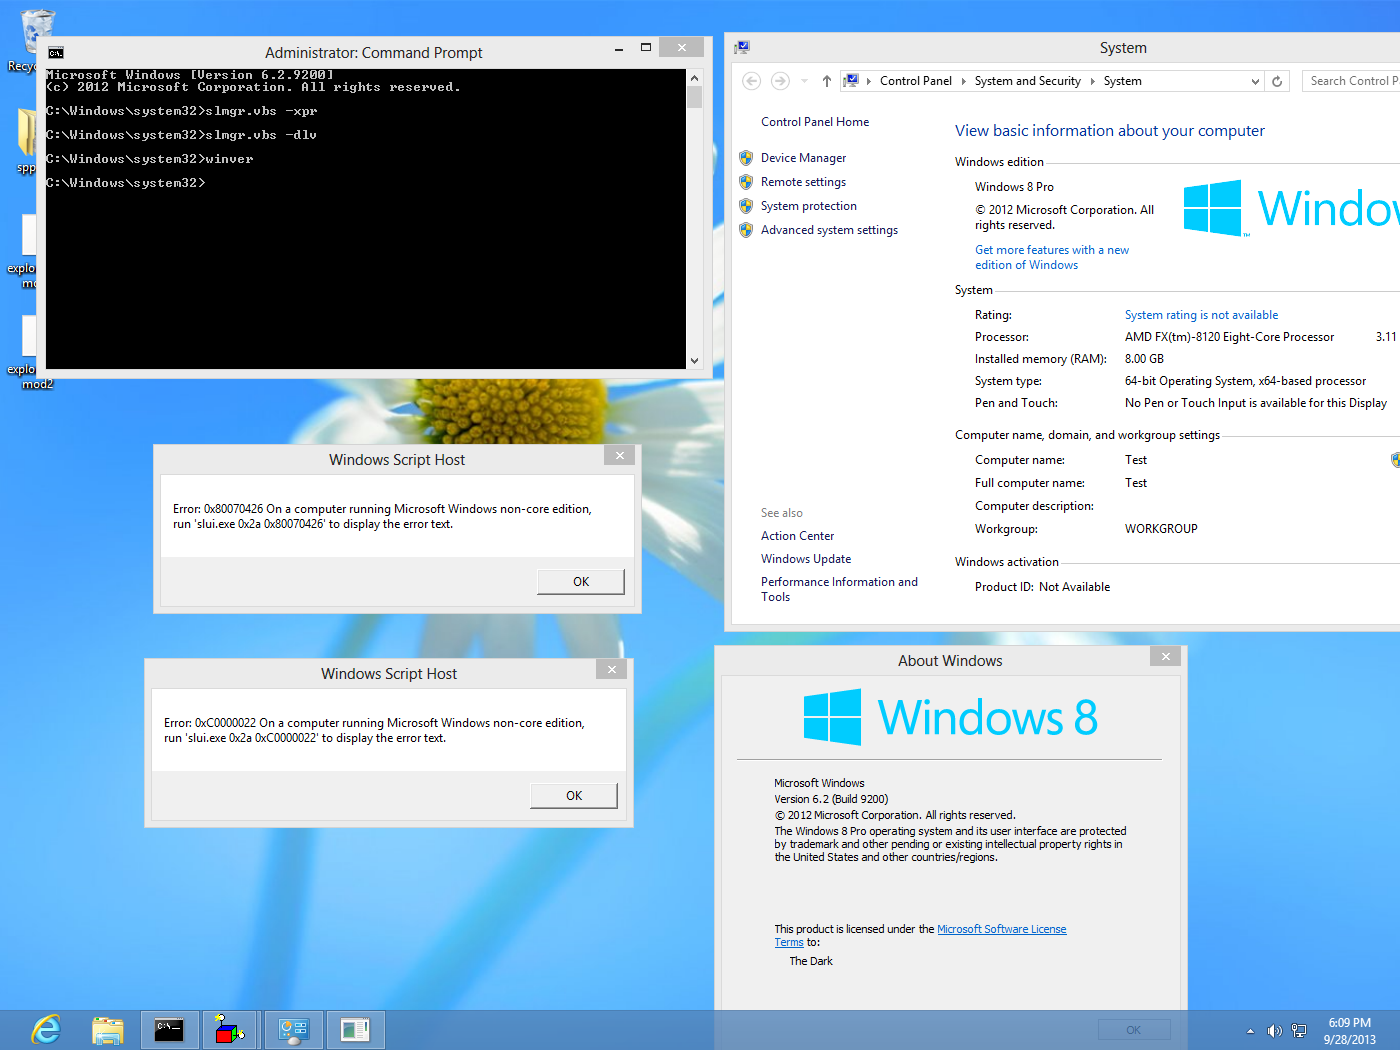 crack windows 8 pro build 9200 64 bit